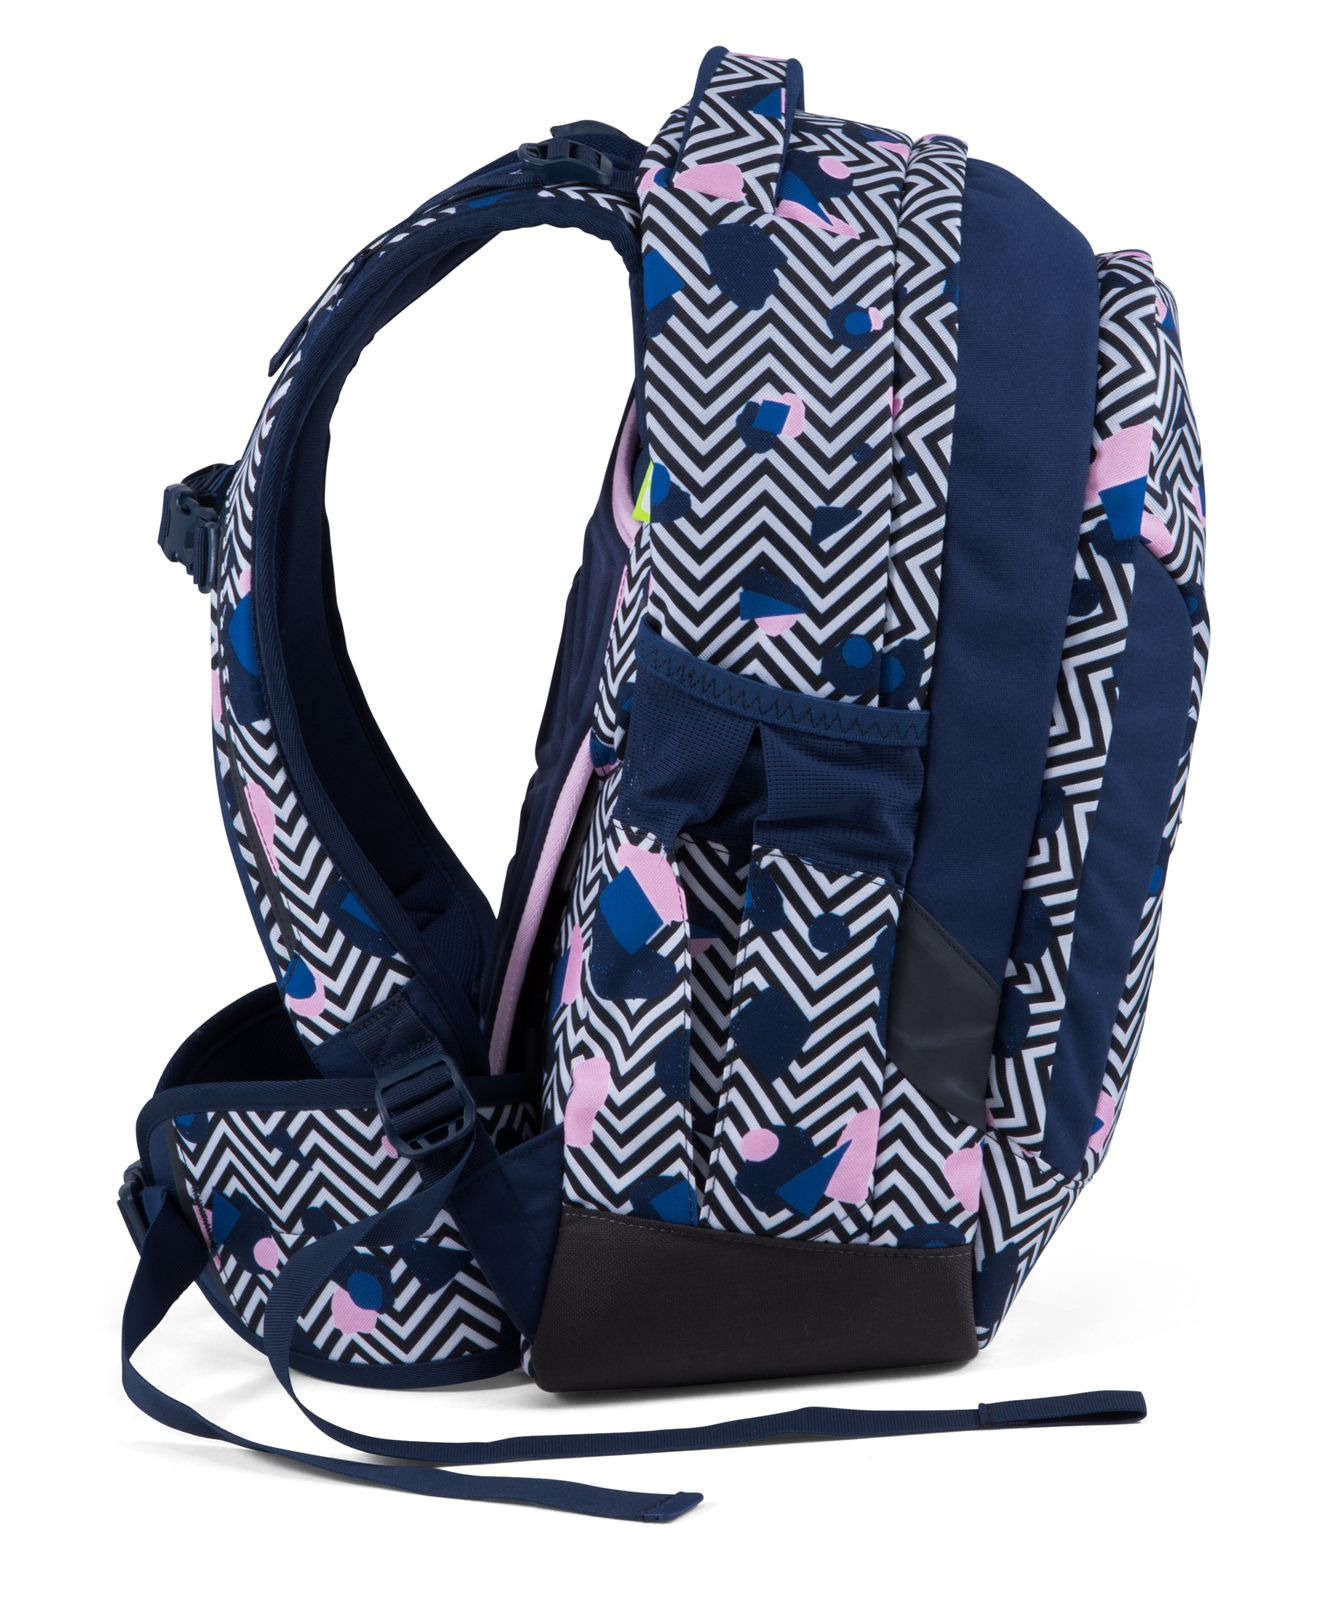 be859a52127ab ... To Closesatch Sleek Backpack Stoney Mony   99